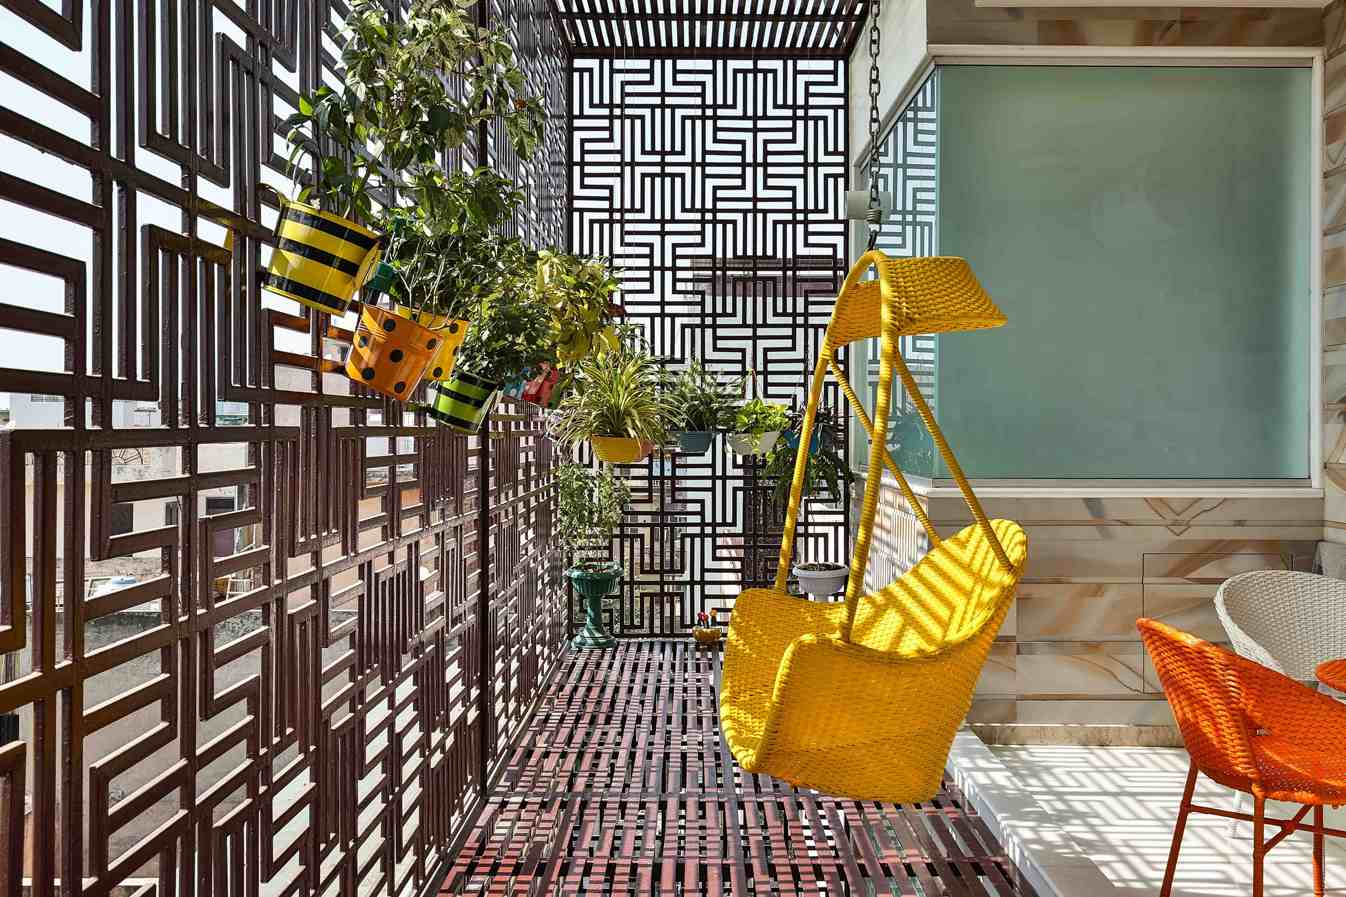 Grill Design for Balcony and Terrace